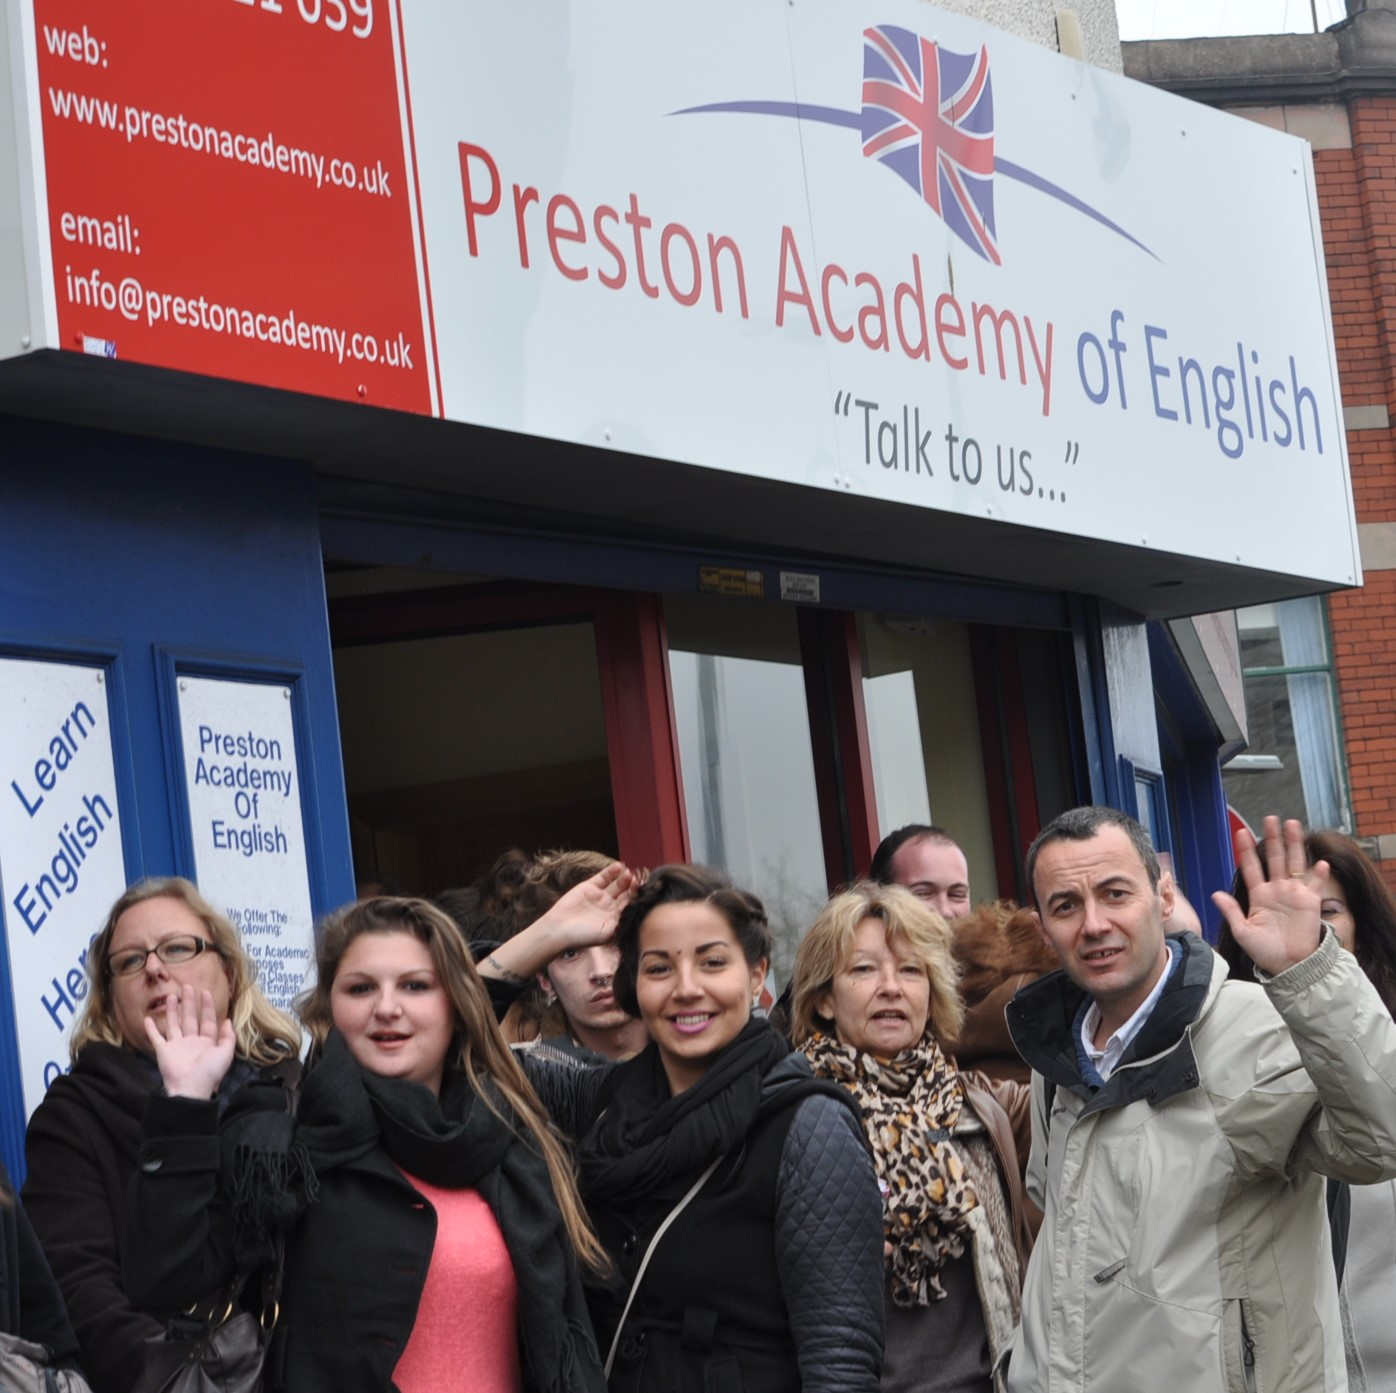 Preston Academy of English